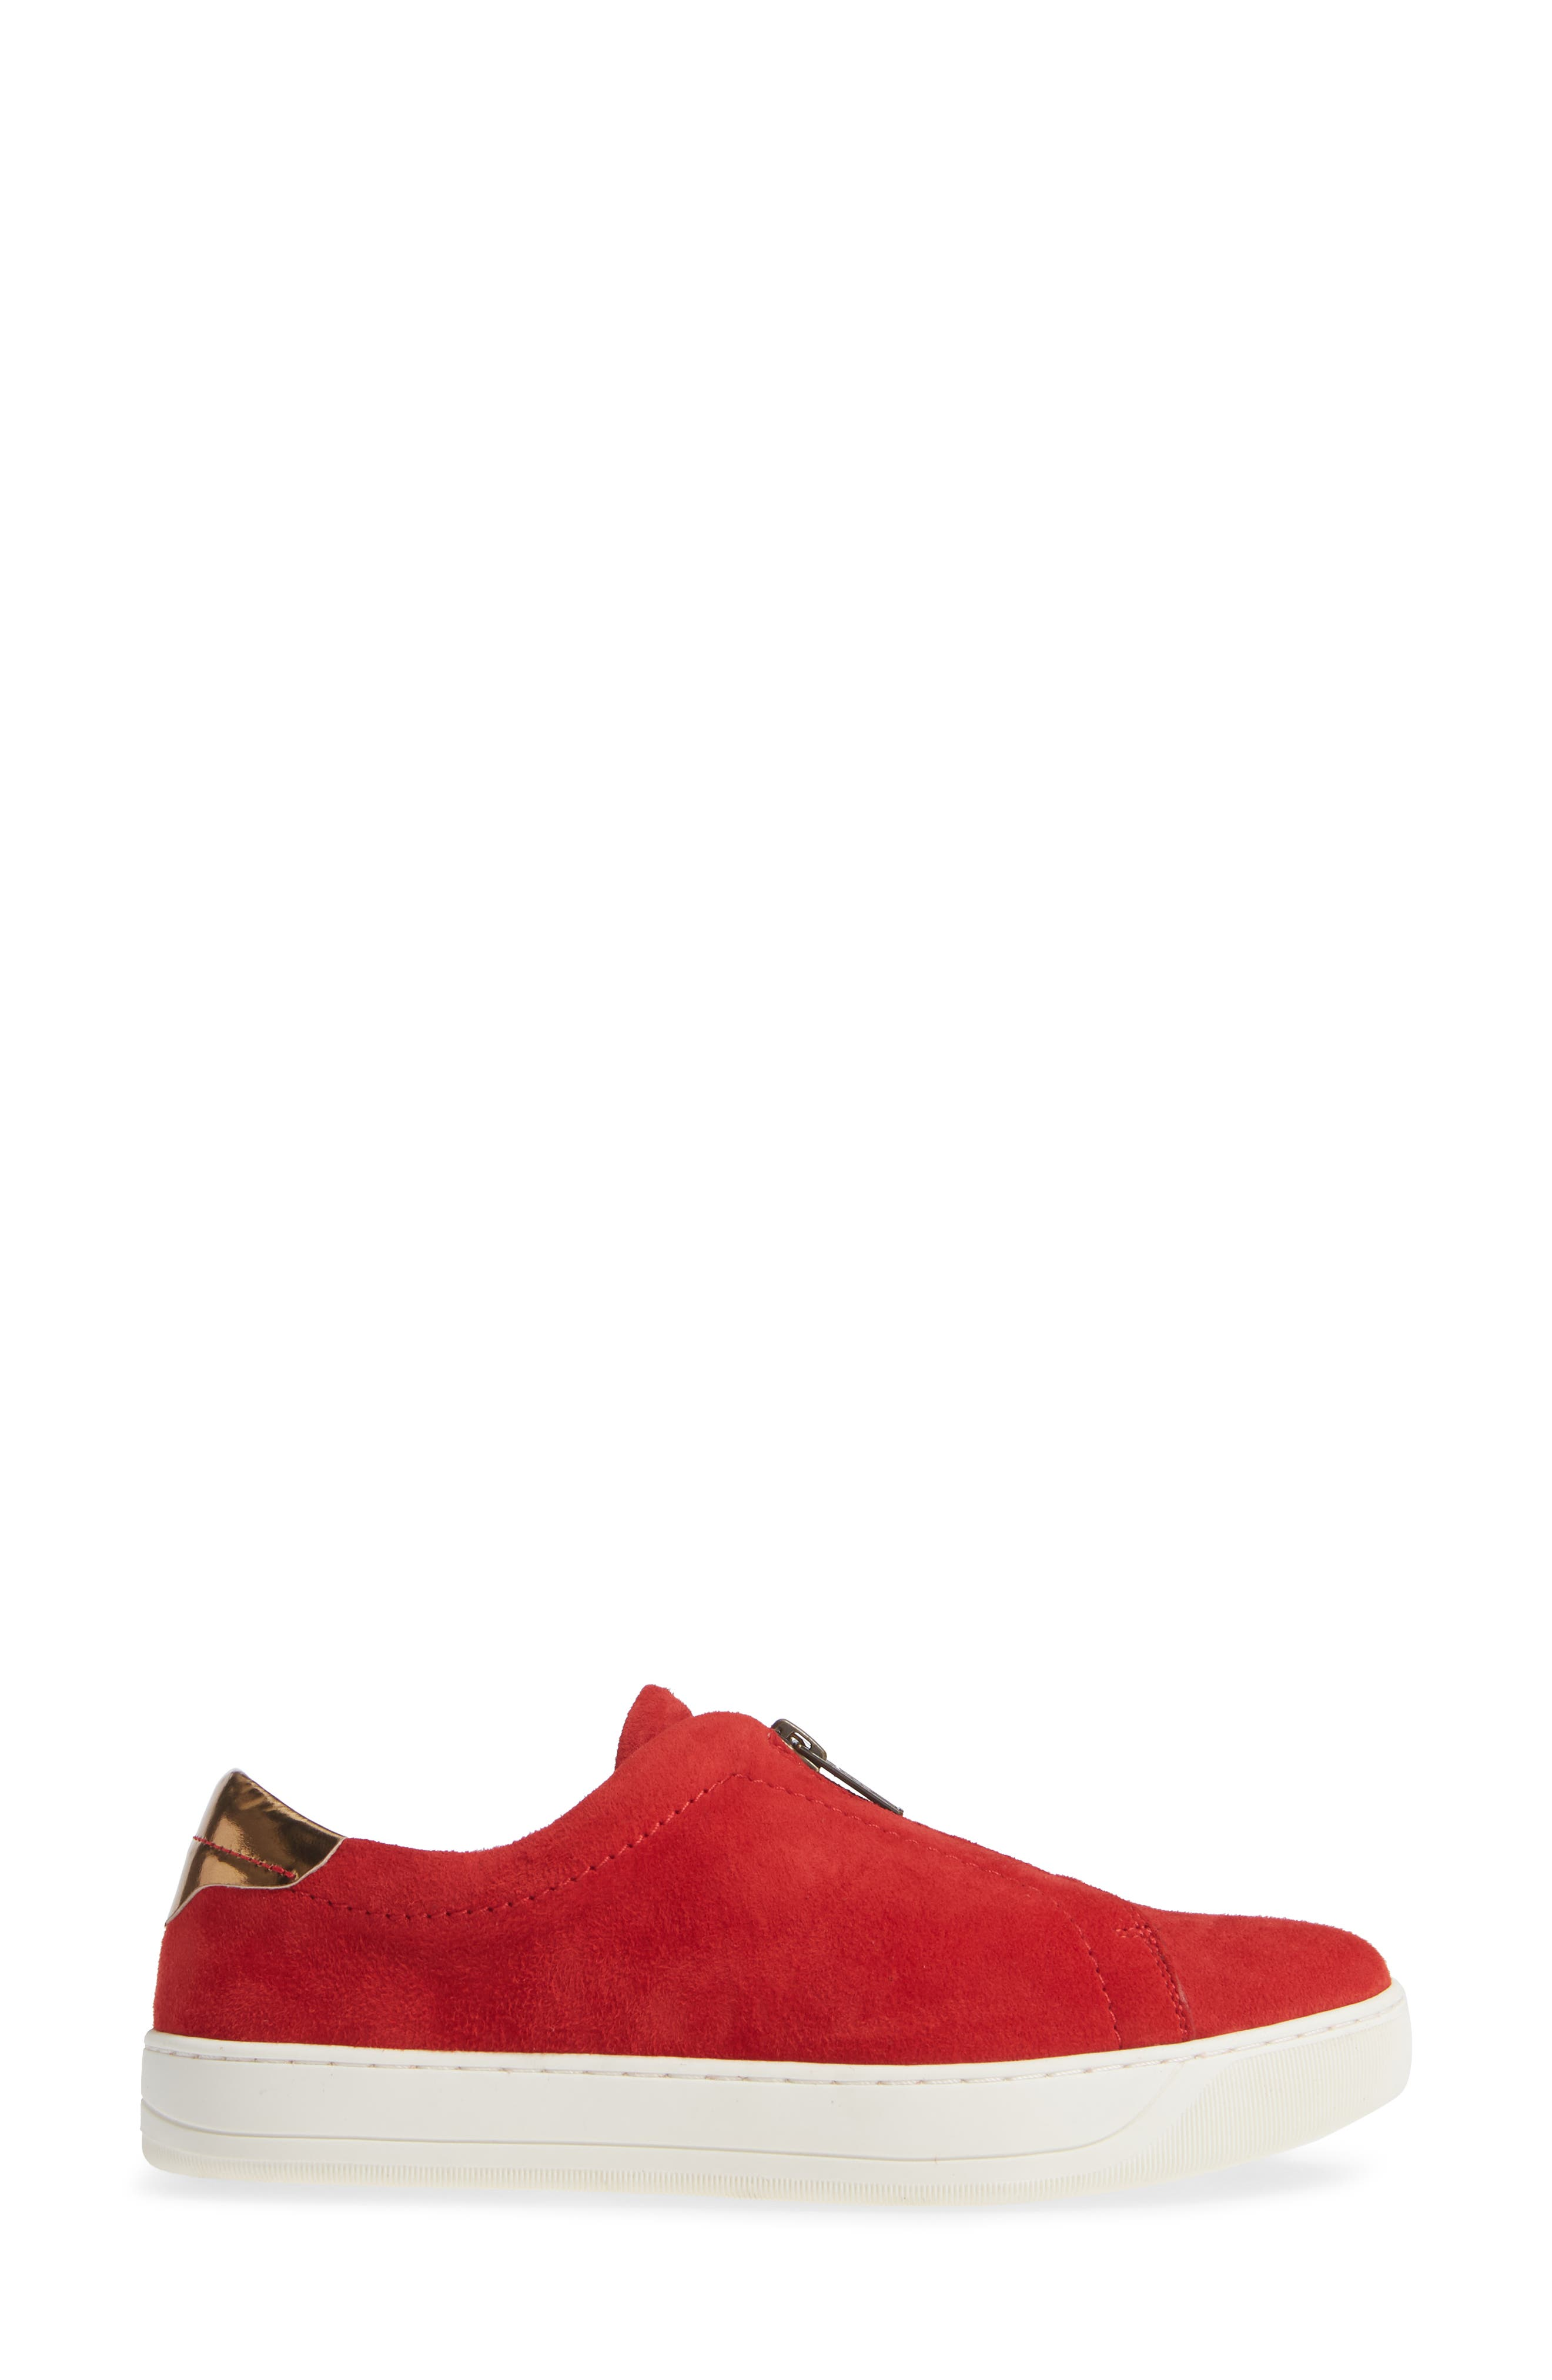 Emma Sneaker,                             Alternate thumbnail 3, color,                             RED SUEDE